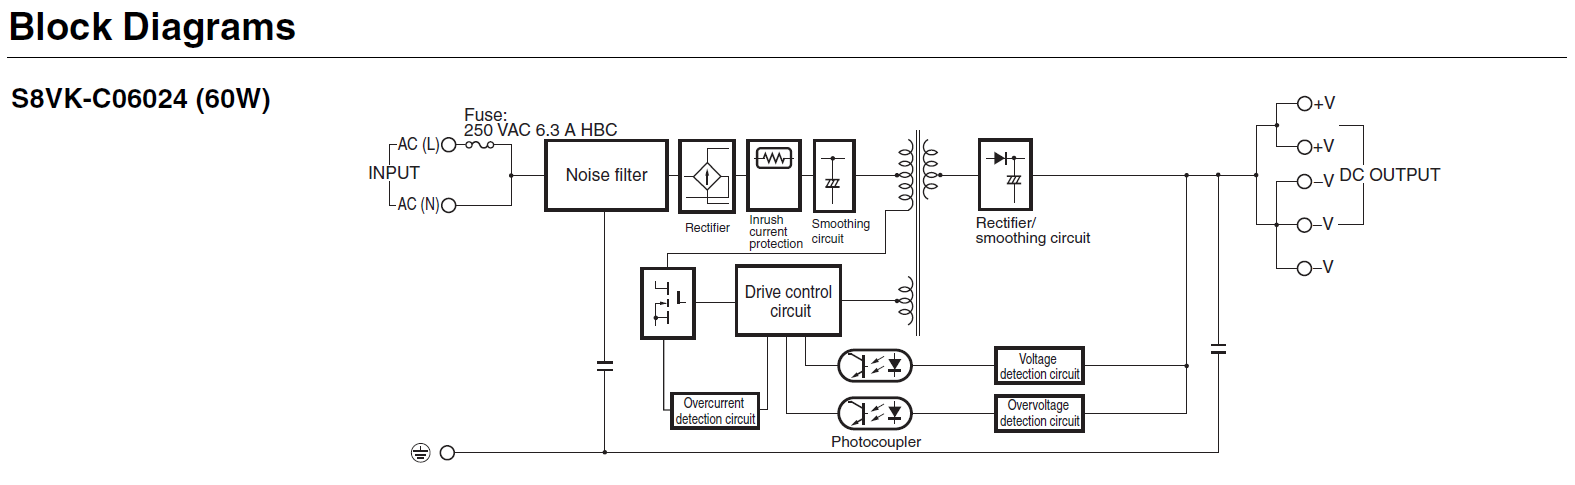 t4 1 block diagram